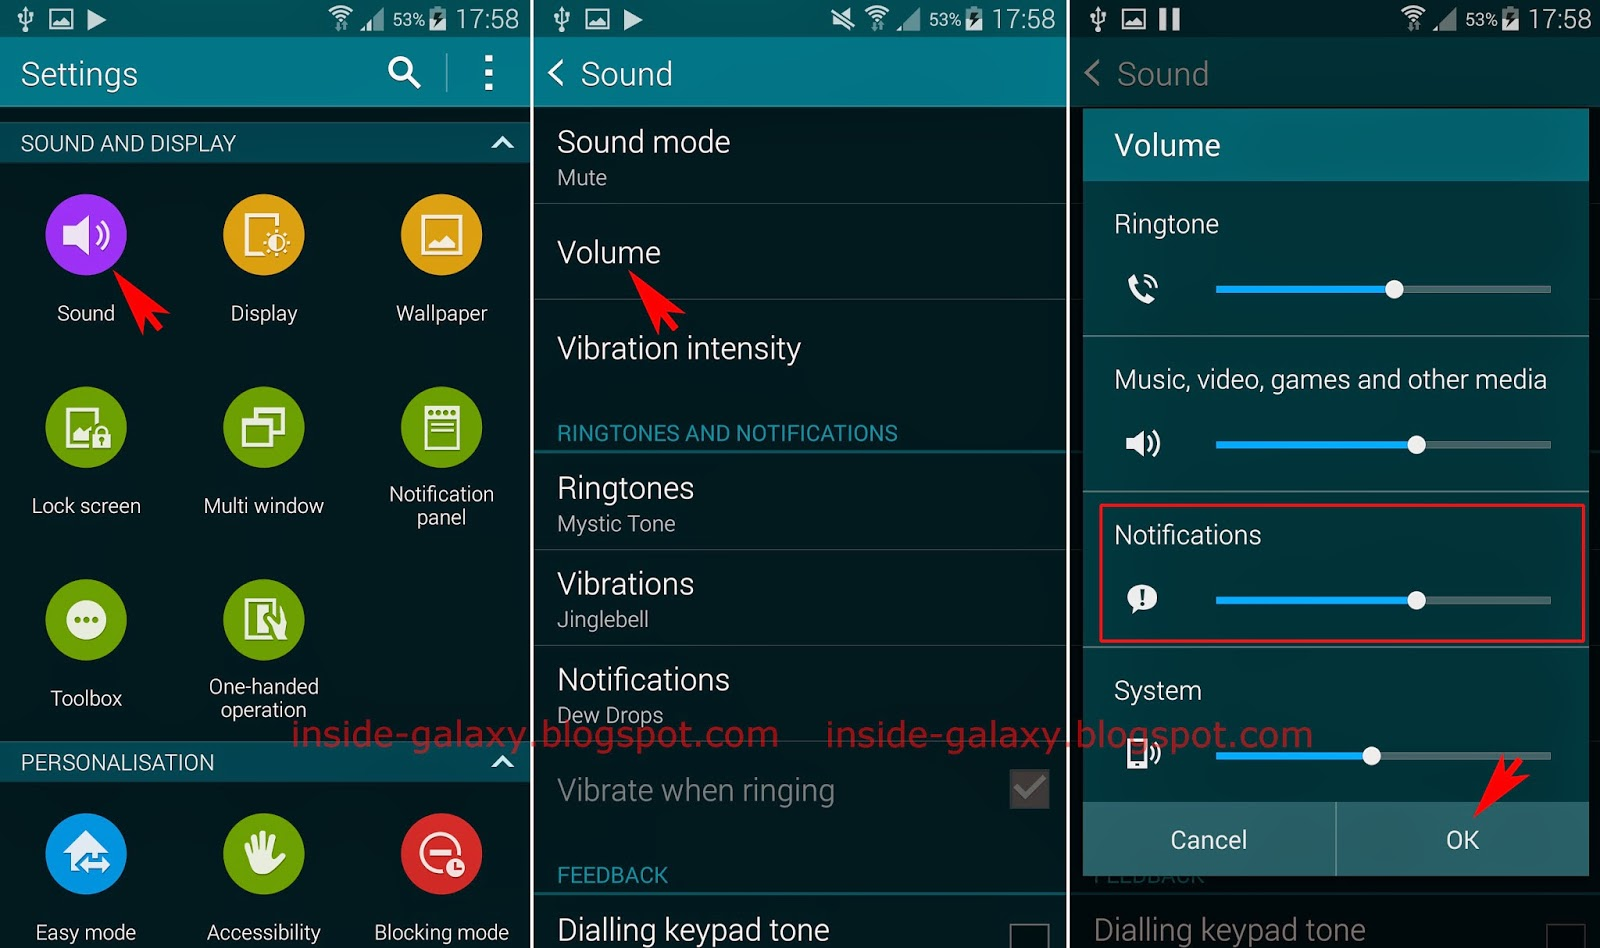 Samsung Galaxy S5: How to Fix No Notification Sound When